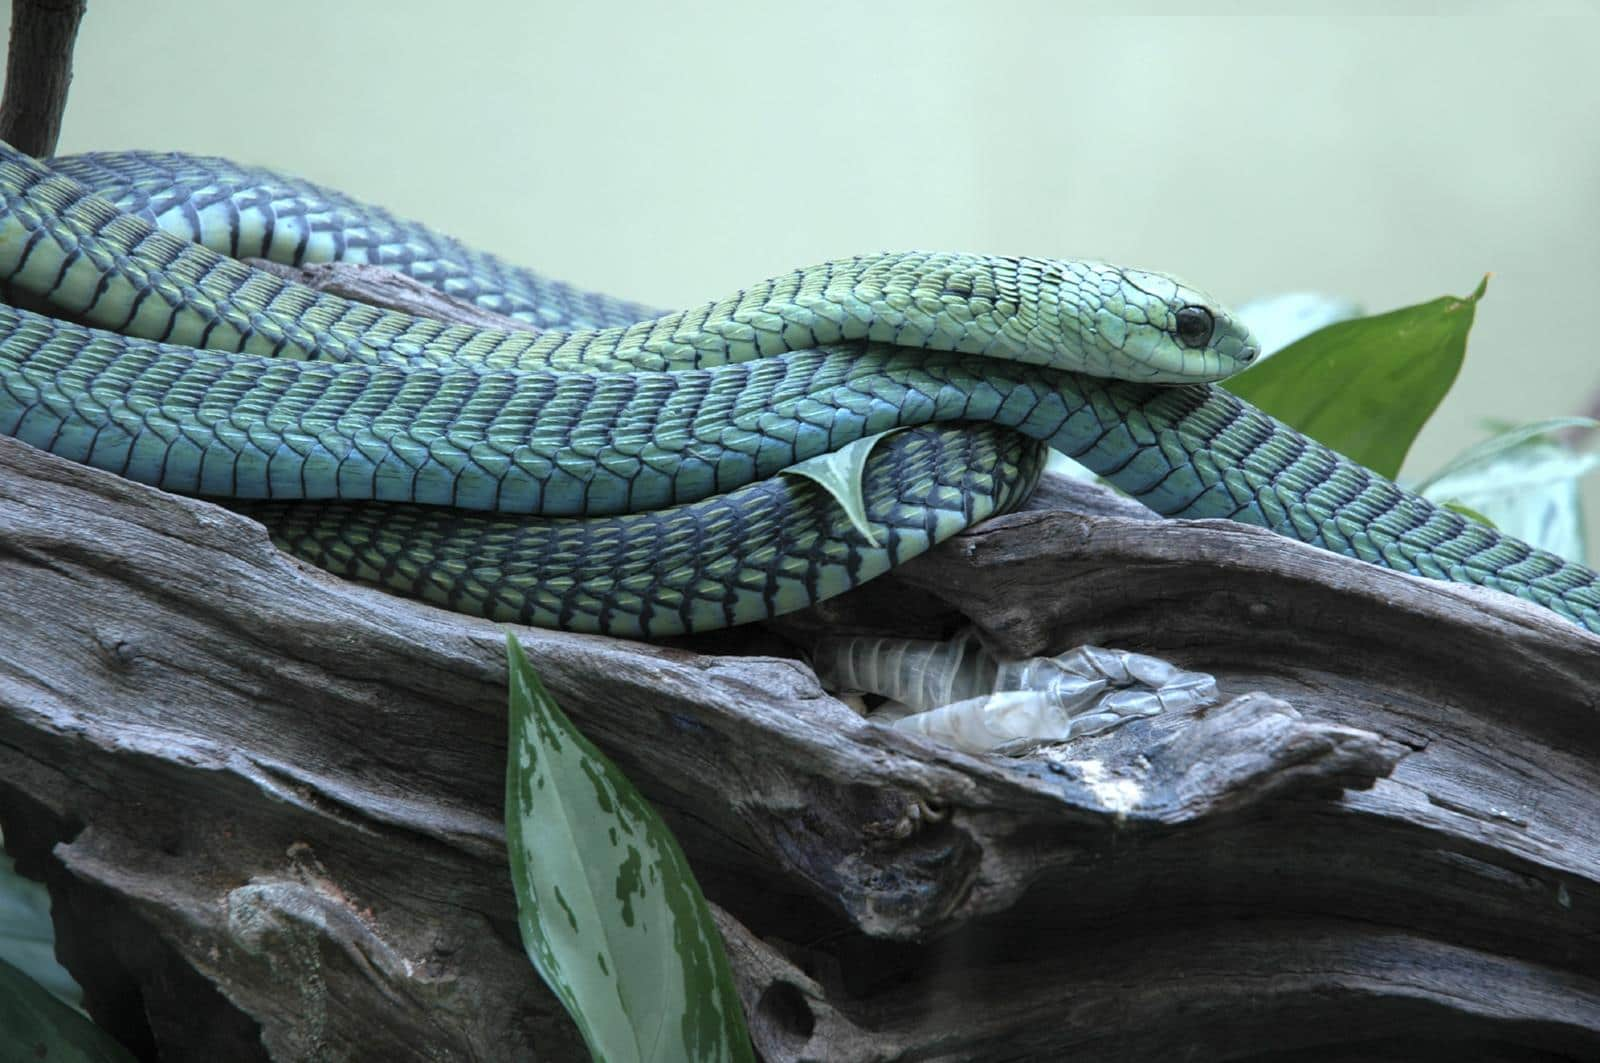 The Boomslang is found in South Africa, Swaziland, Southern Mozambique, Botswana and northern Namibia.